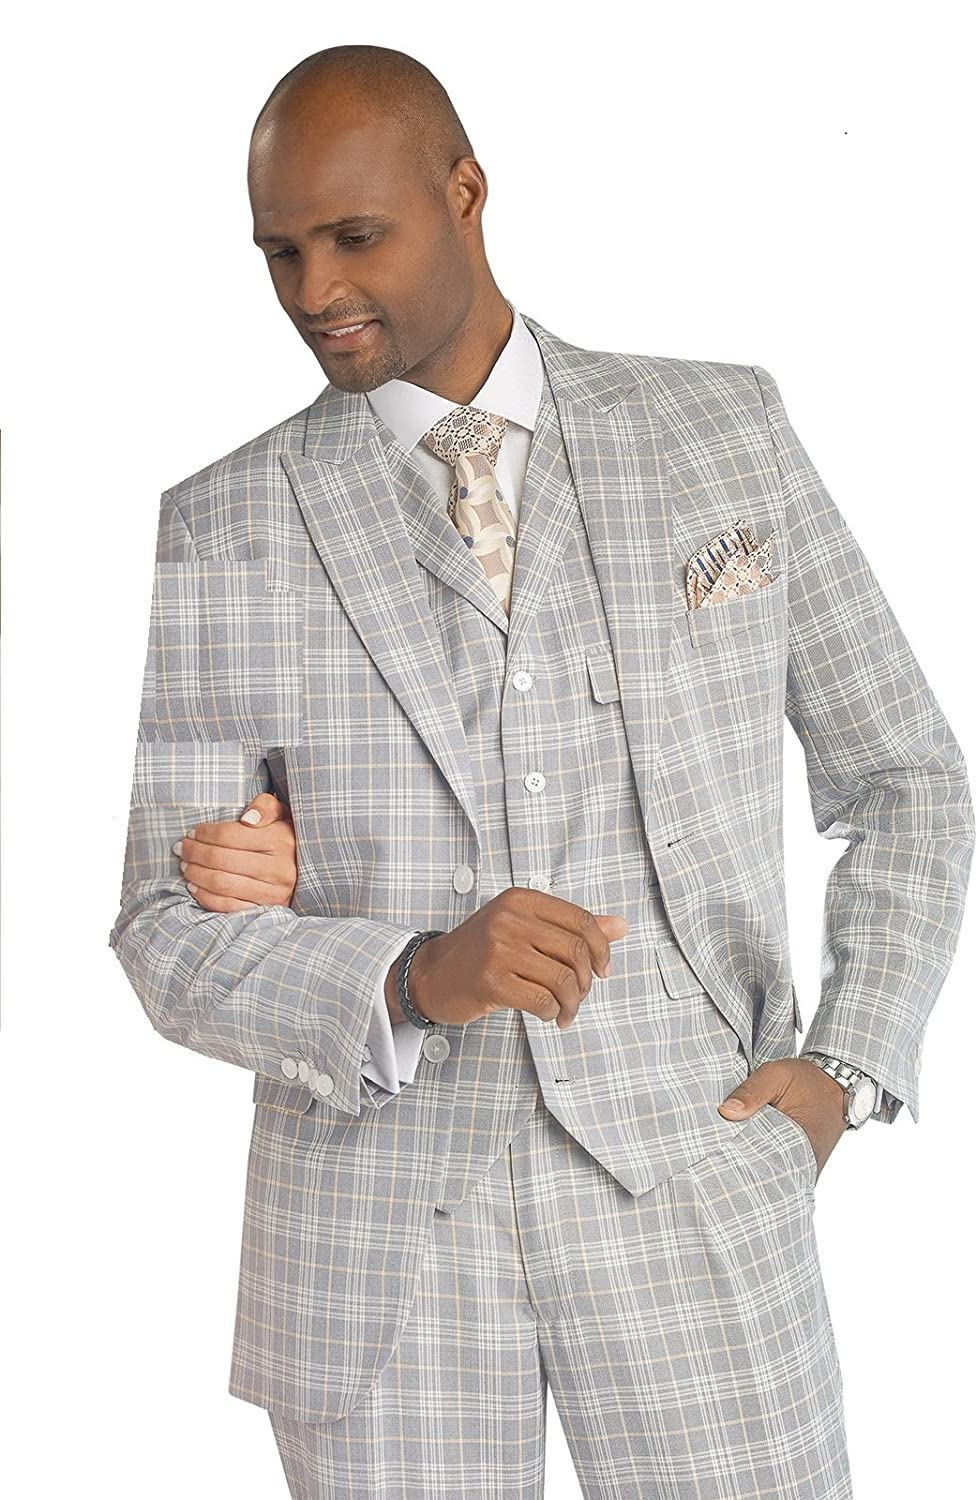 DressinGreatGatsbyClothesforMen E.J. Samuel Fashion Mens 3 Piece Grey Plaid Suit Suits-Men M2679 $148.99 AT vintagedancer.com